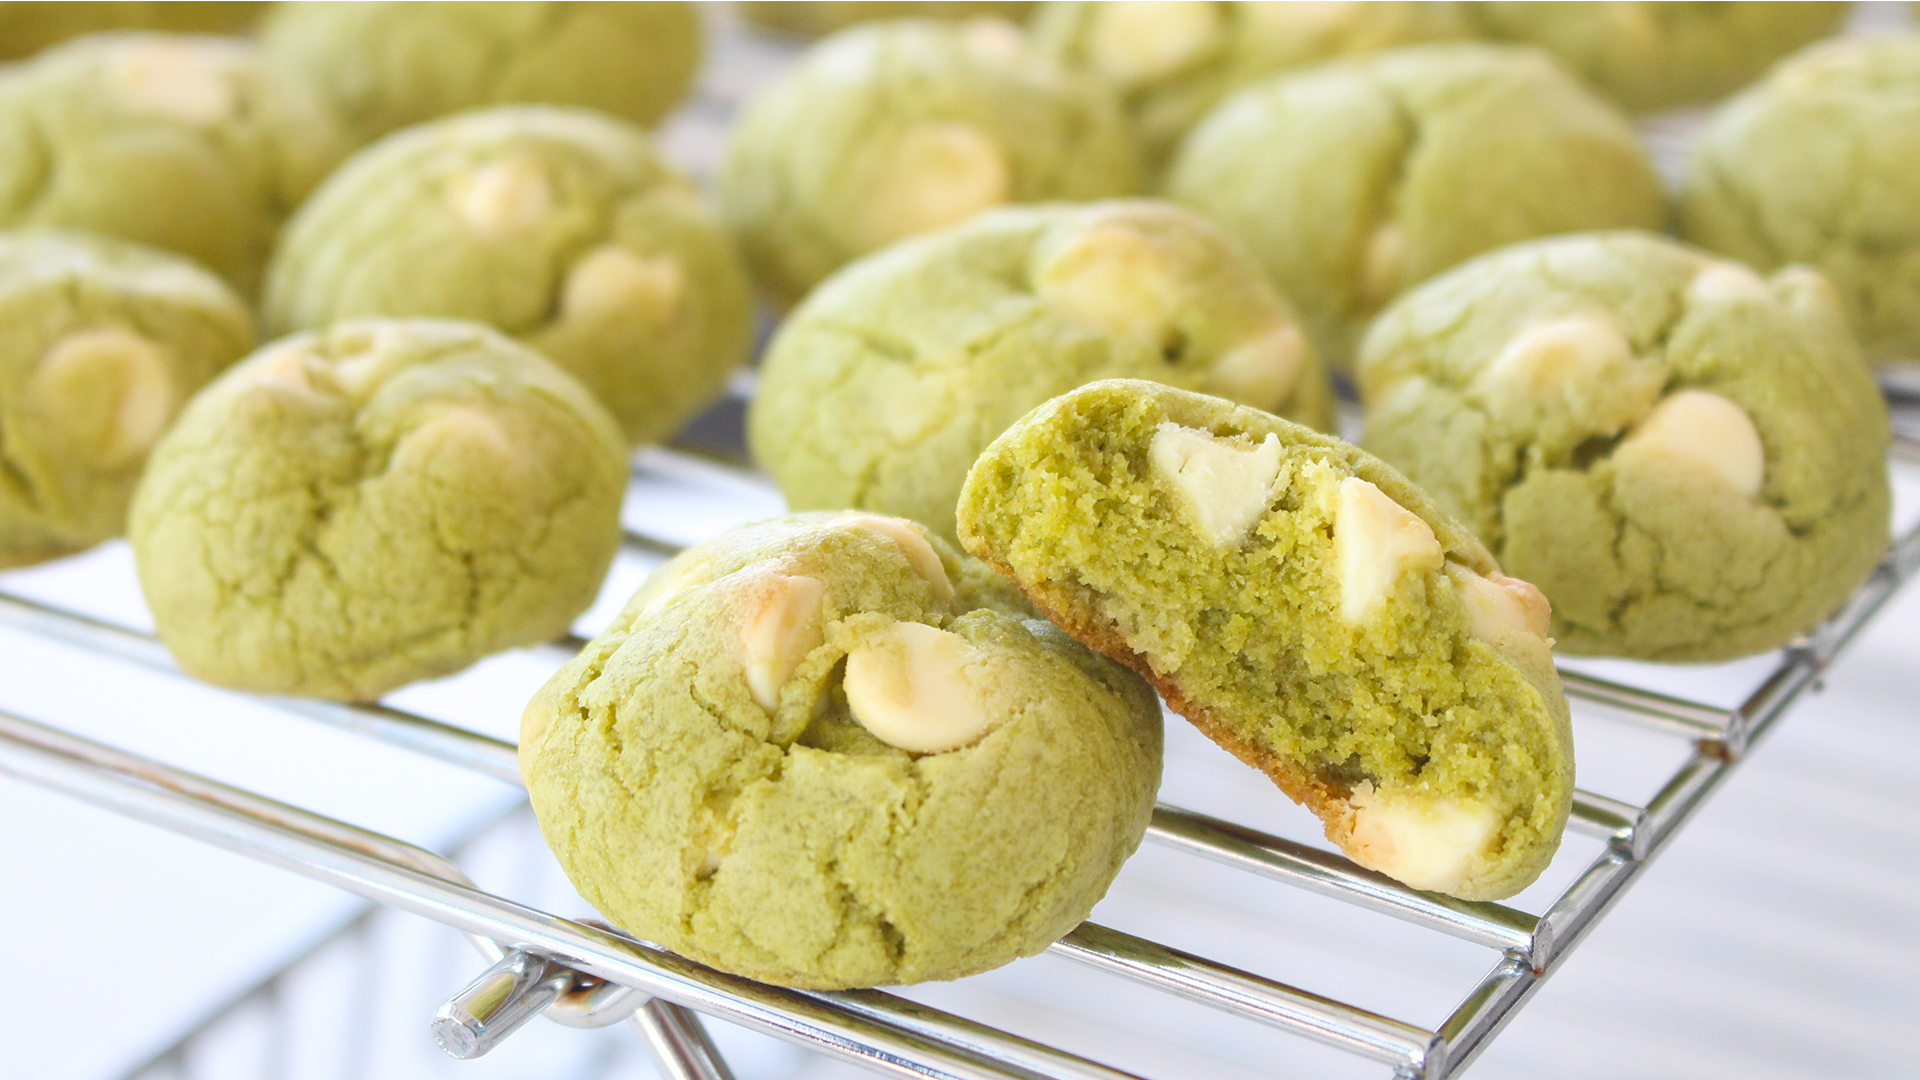 Green Tea Cookies With White Chocolate Chips